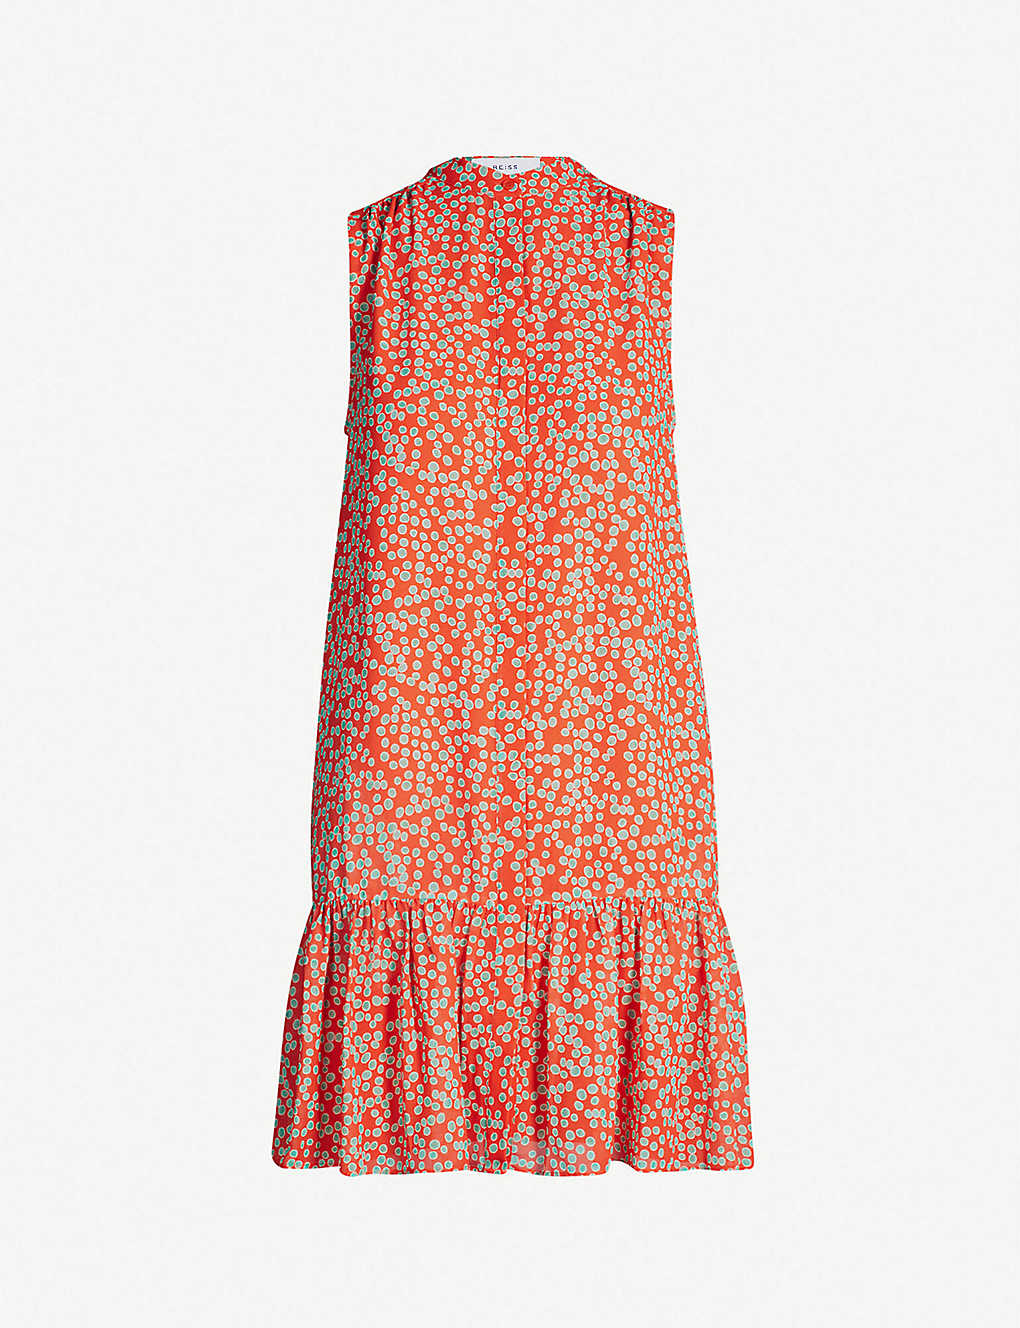 c1ecf5a92c REISS - Nia spot-print shift chiffon dress | Selfridges.com